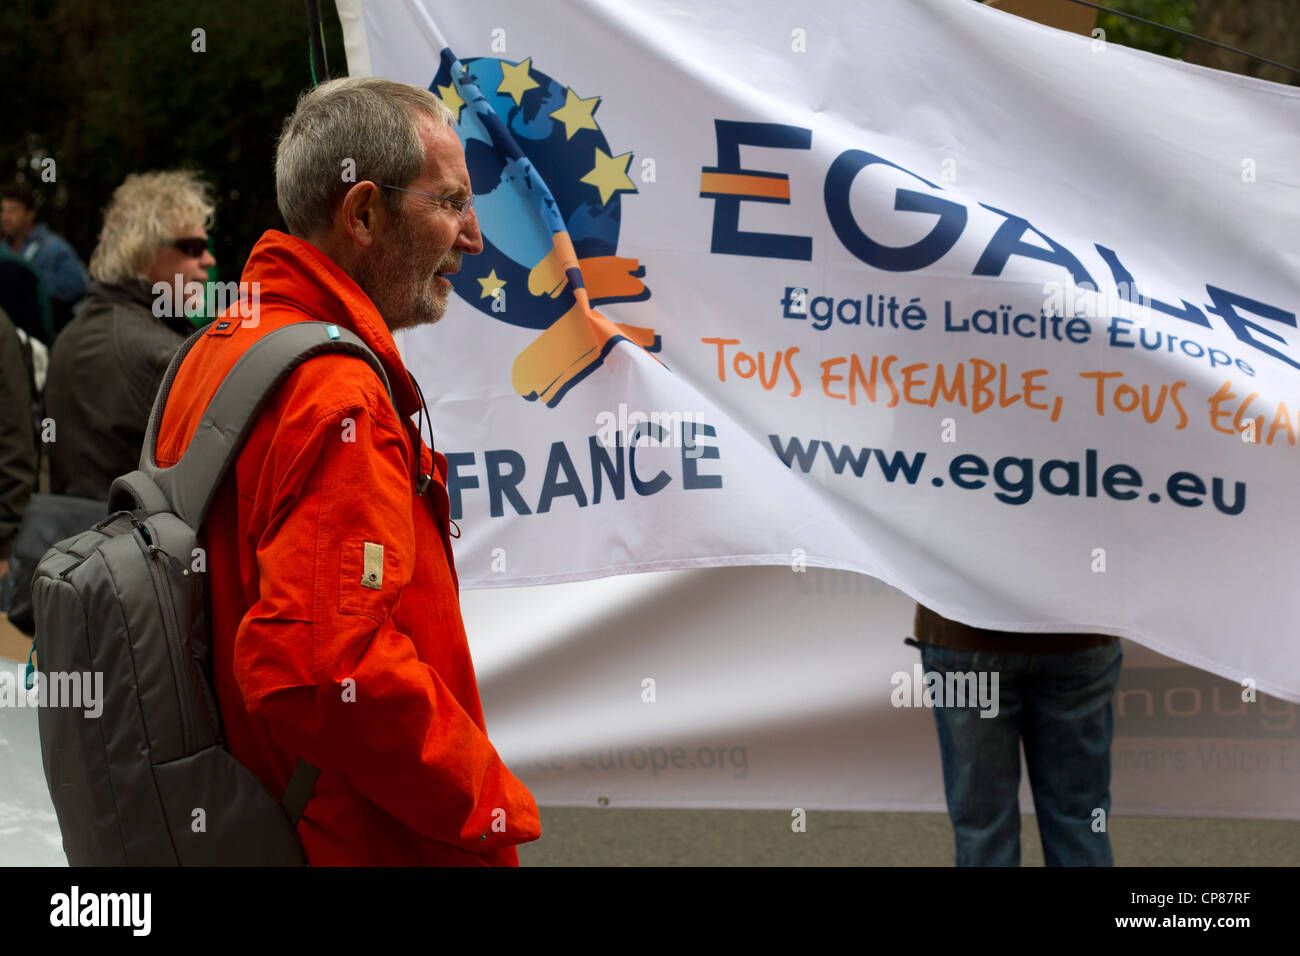 French supporters at the Secular Europe March, London, September 2011. - Stock Image